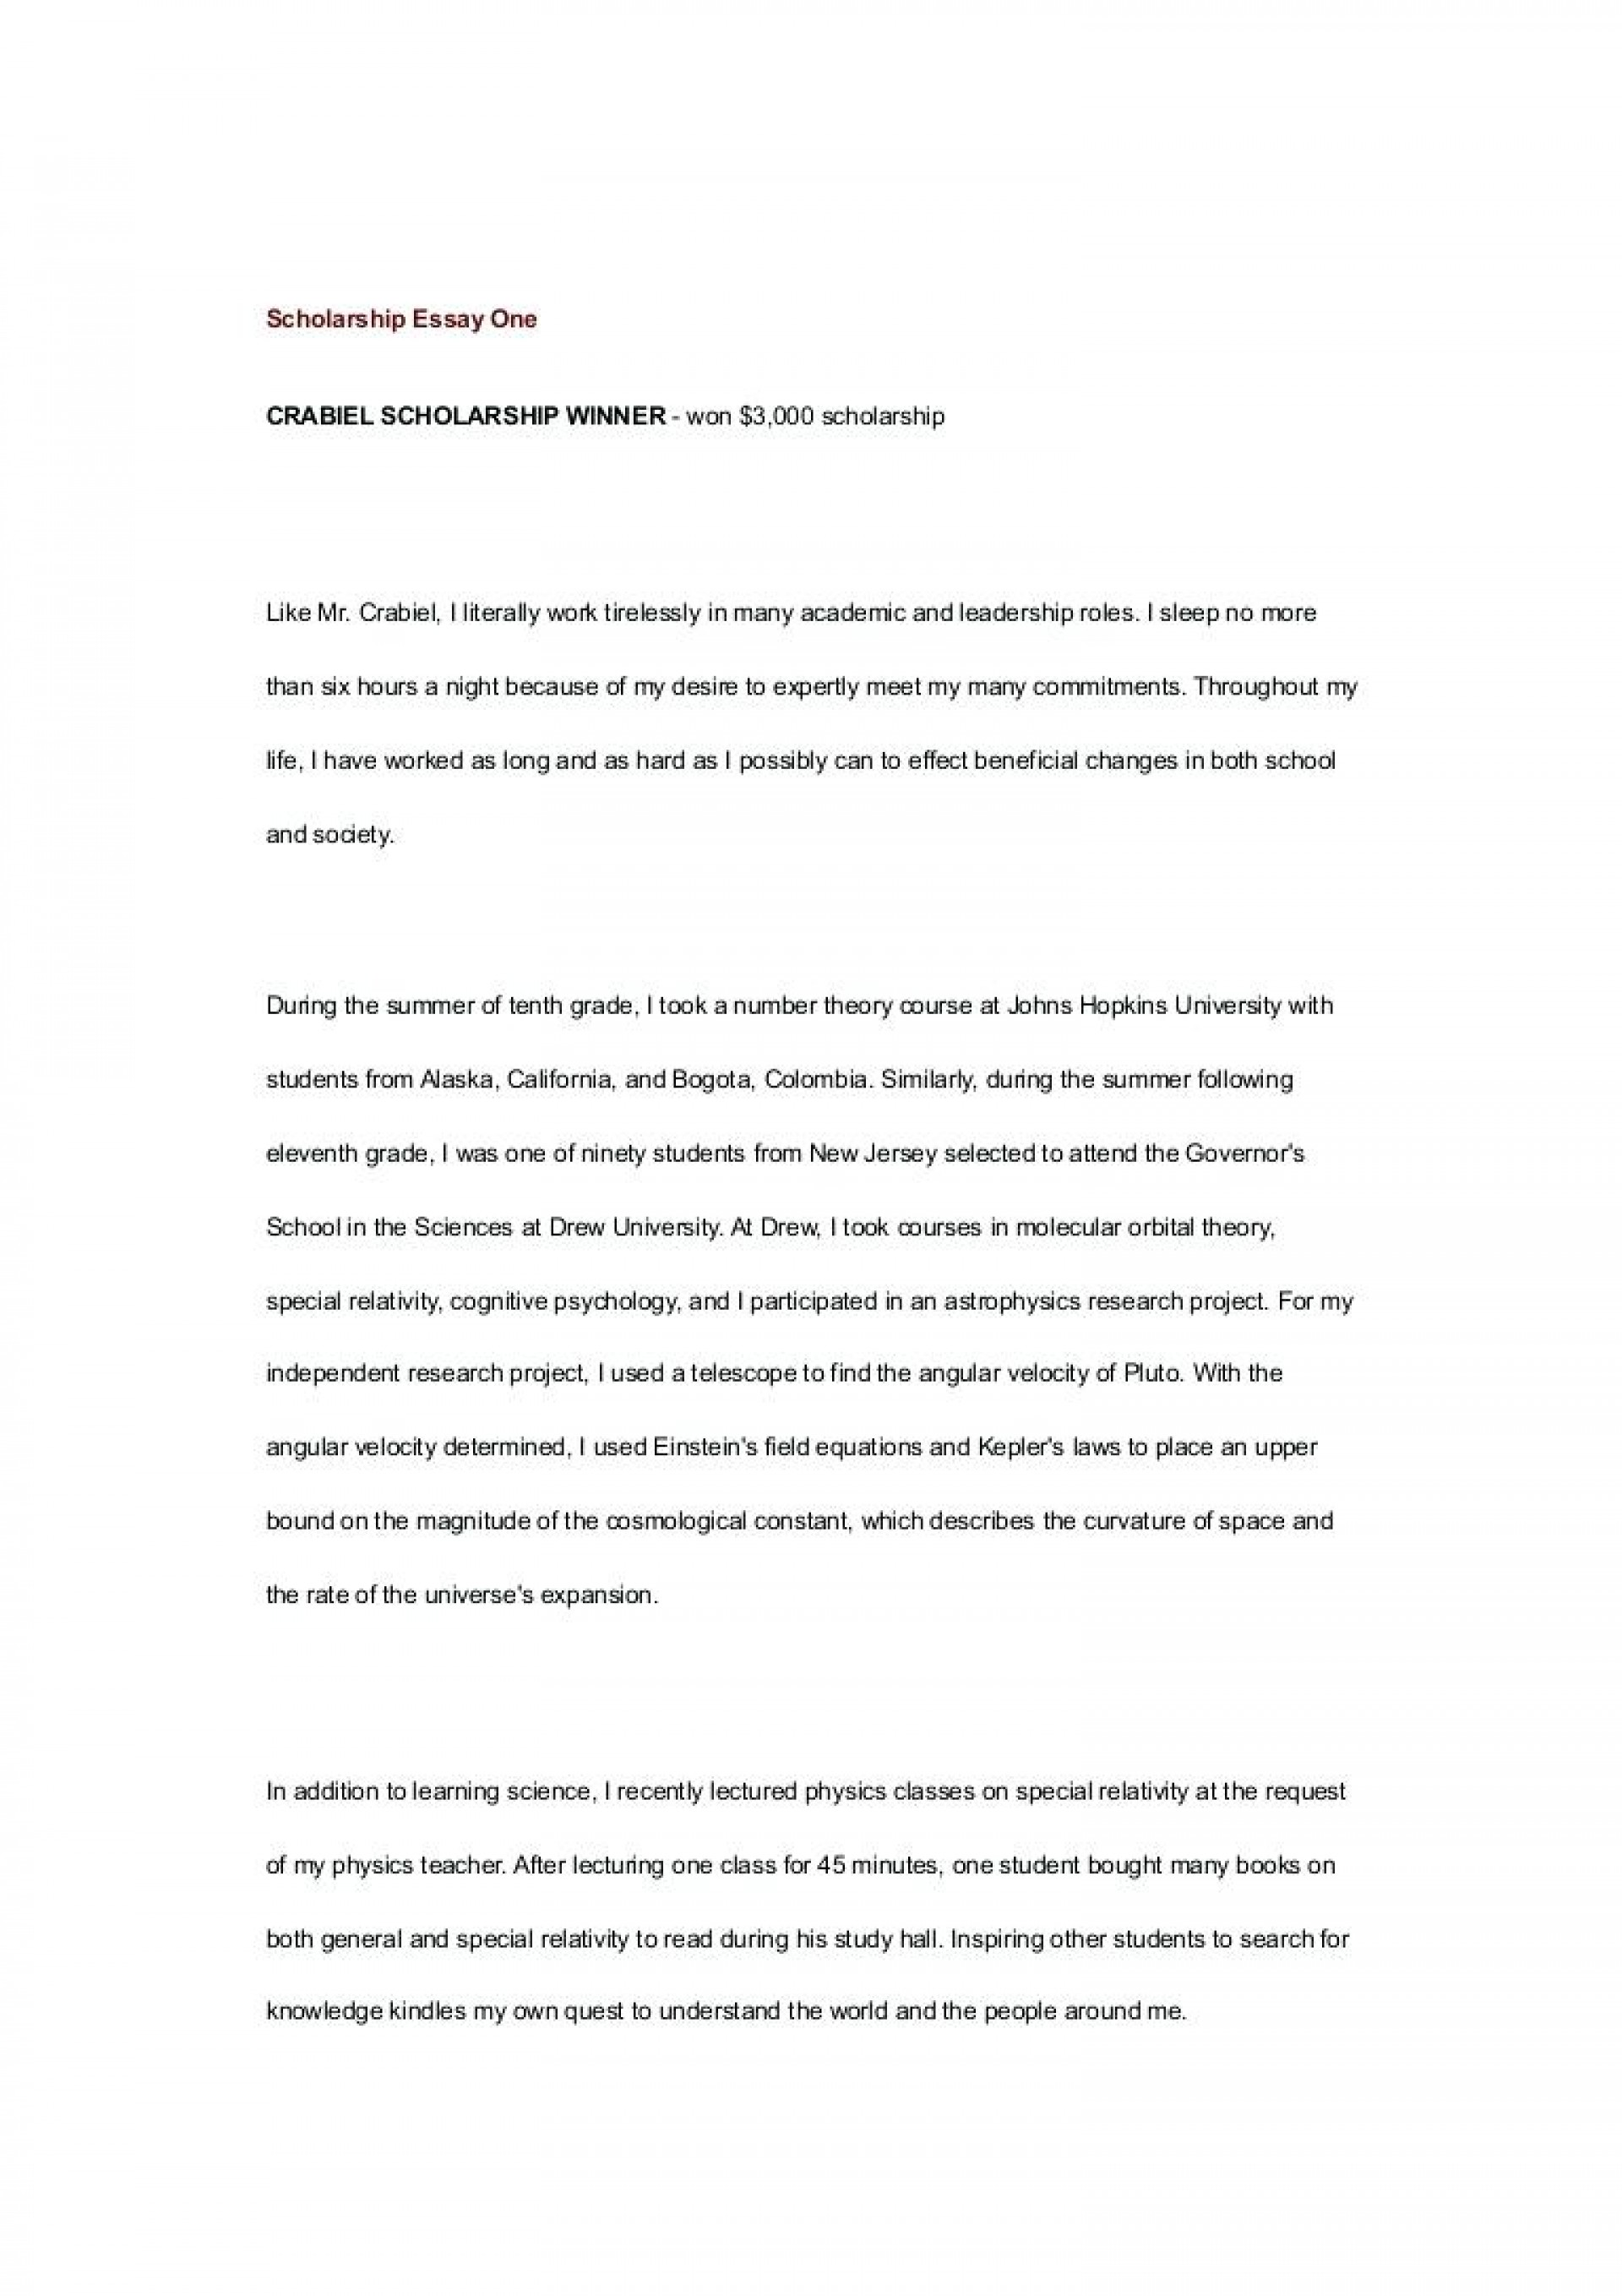 021 Essay Example College Scholarship Application Template No Legit Resume Cover Letter Thumbnail For Sample Format Exceptional Scholarships Undergraduates High School Seniors Students 2019 1920